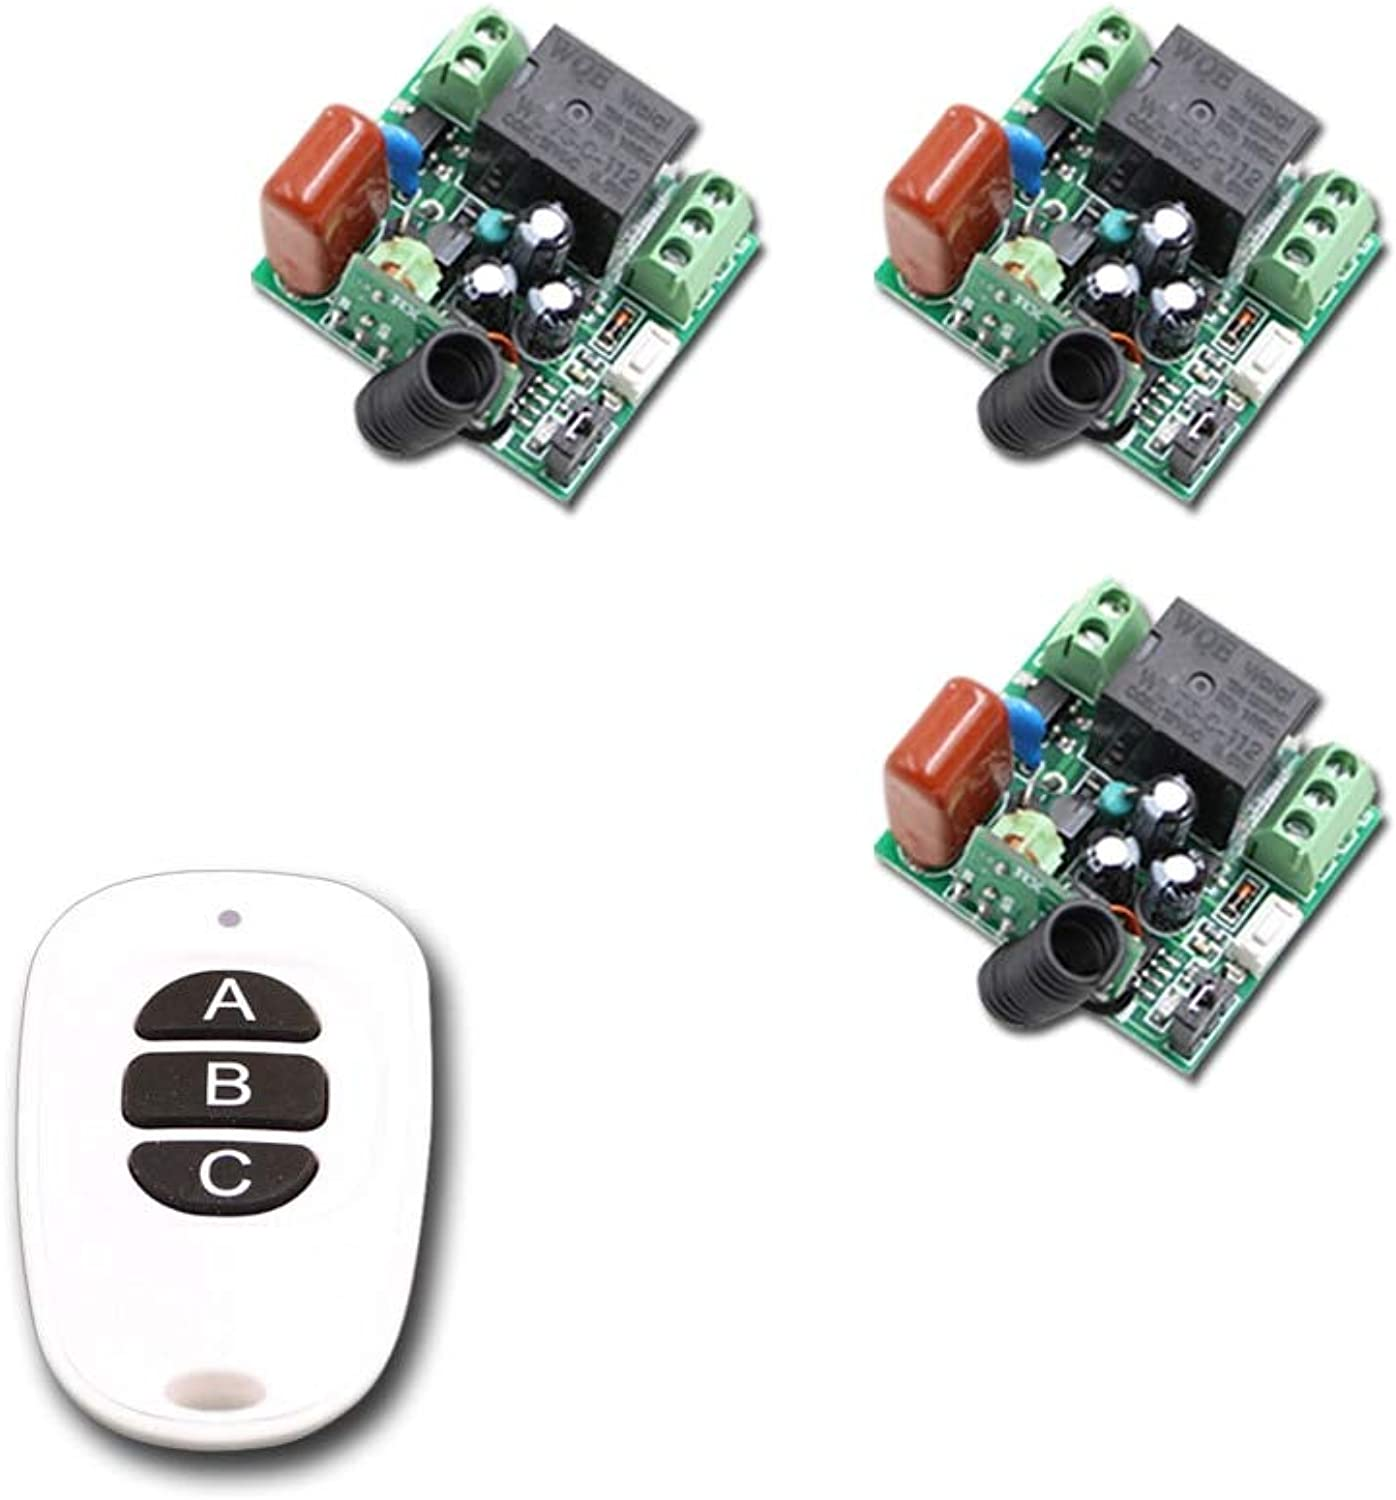 New Mini Size RF Wireless Remote Control Switch System Waterproof Transmitter & 3pcs Receivers315 433mhz Learning Code(color  433MHZ)